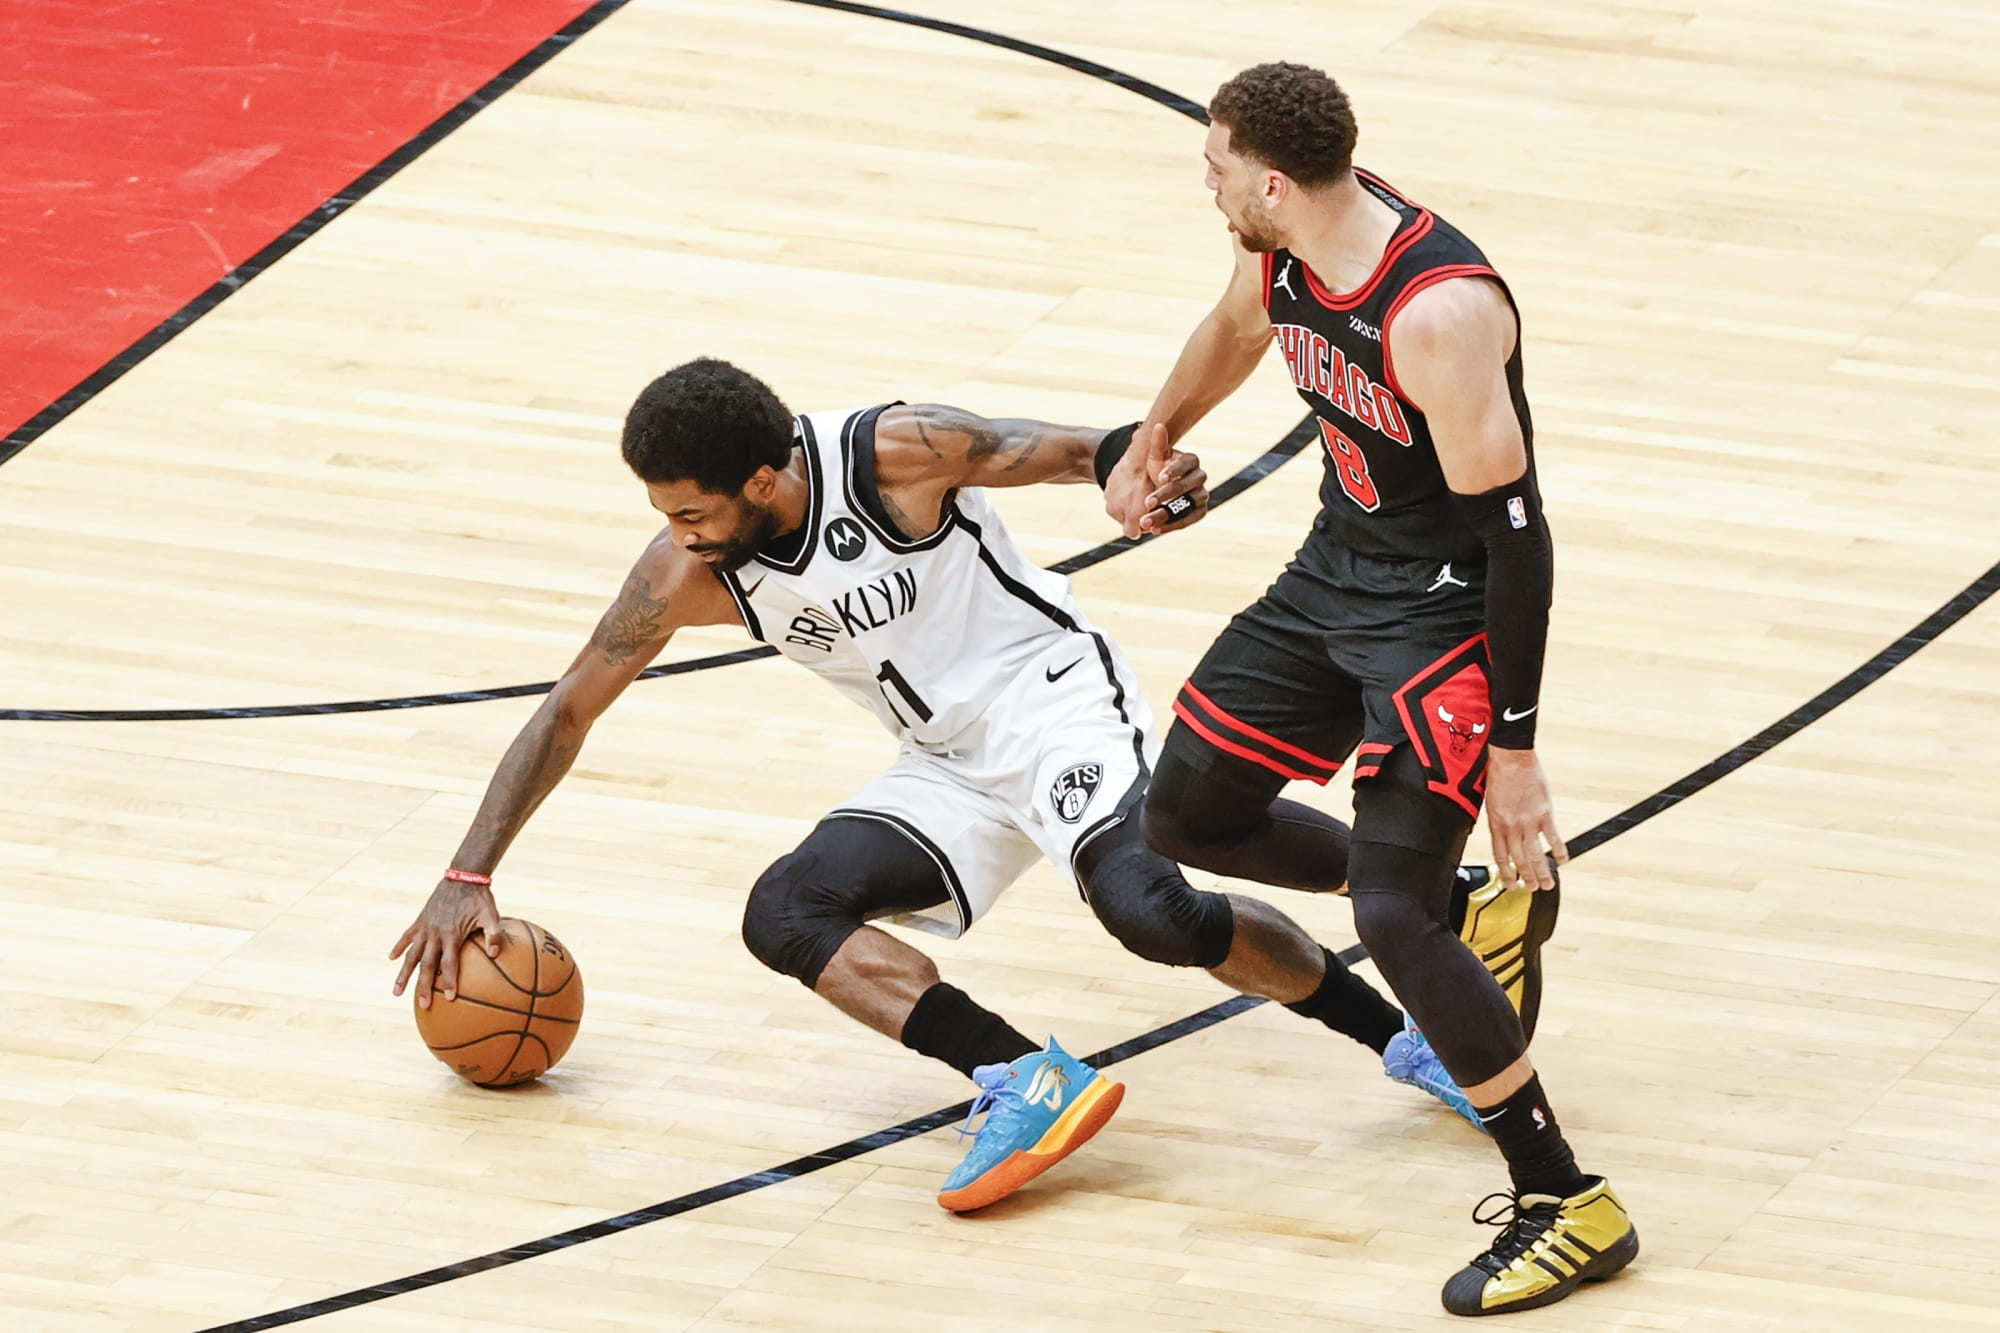 Brooklyn Nets: Kyrie Irving leaves game after taking brutal elbow to the face -  Nothin' But Nets